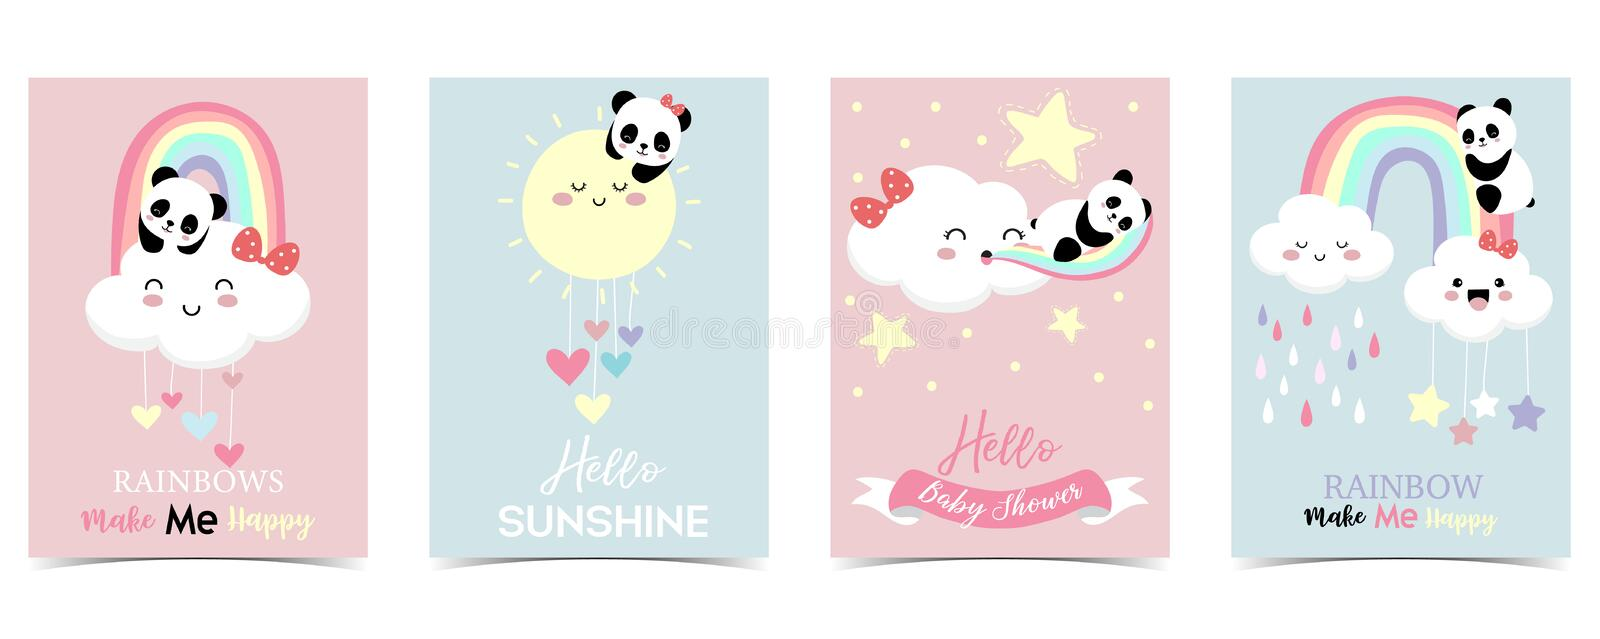 Colorful hand drawn cute card with heart,cloud,panda and rain.Rainbow make me happy royalty free illustration